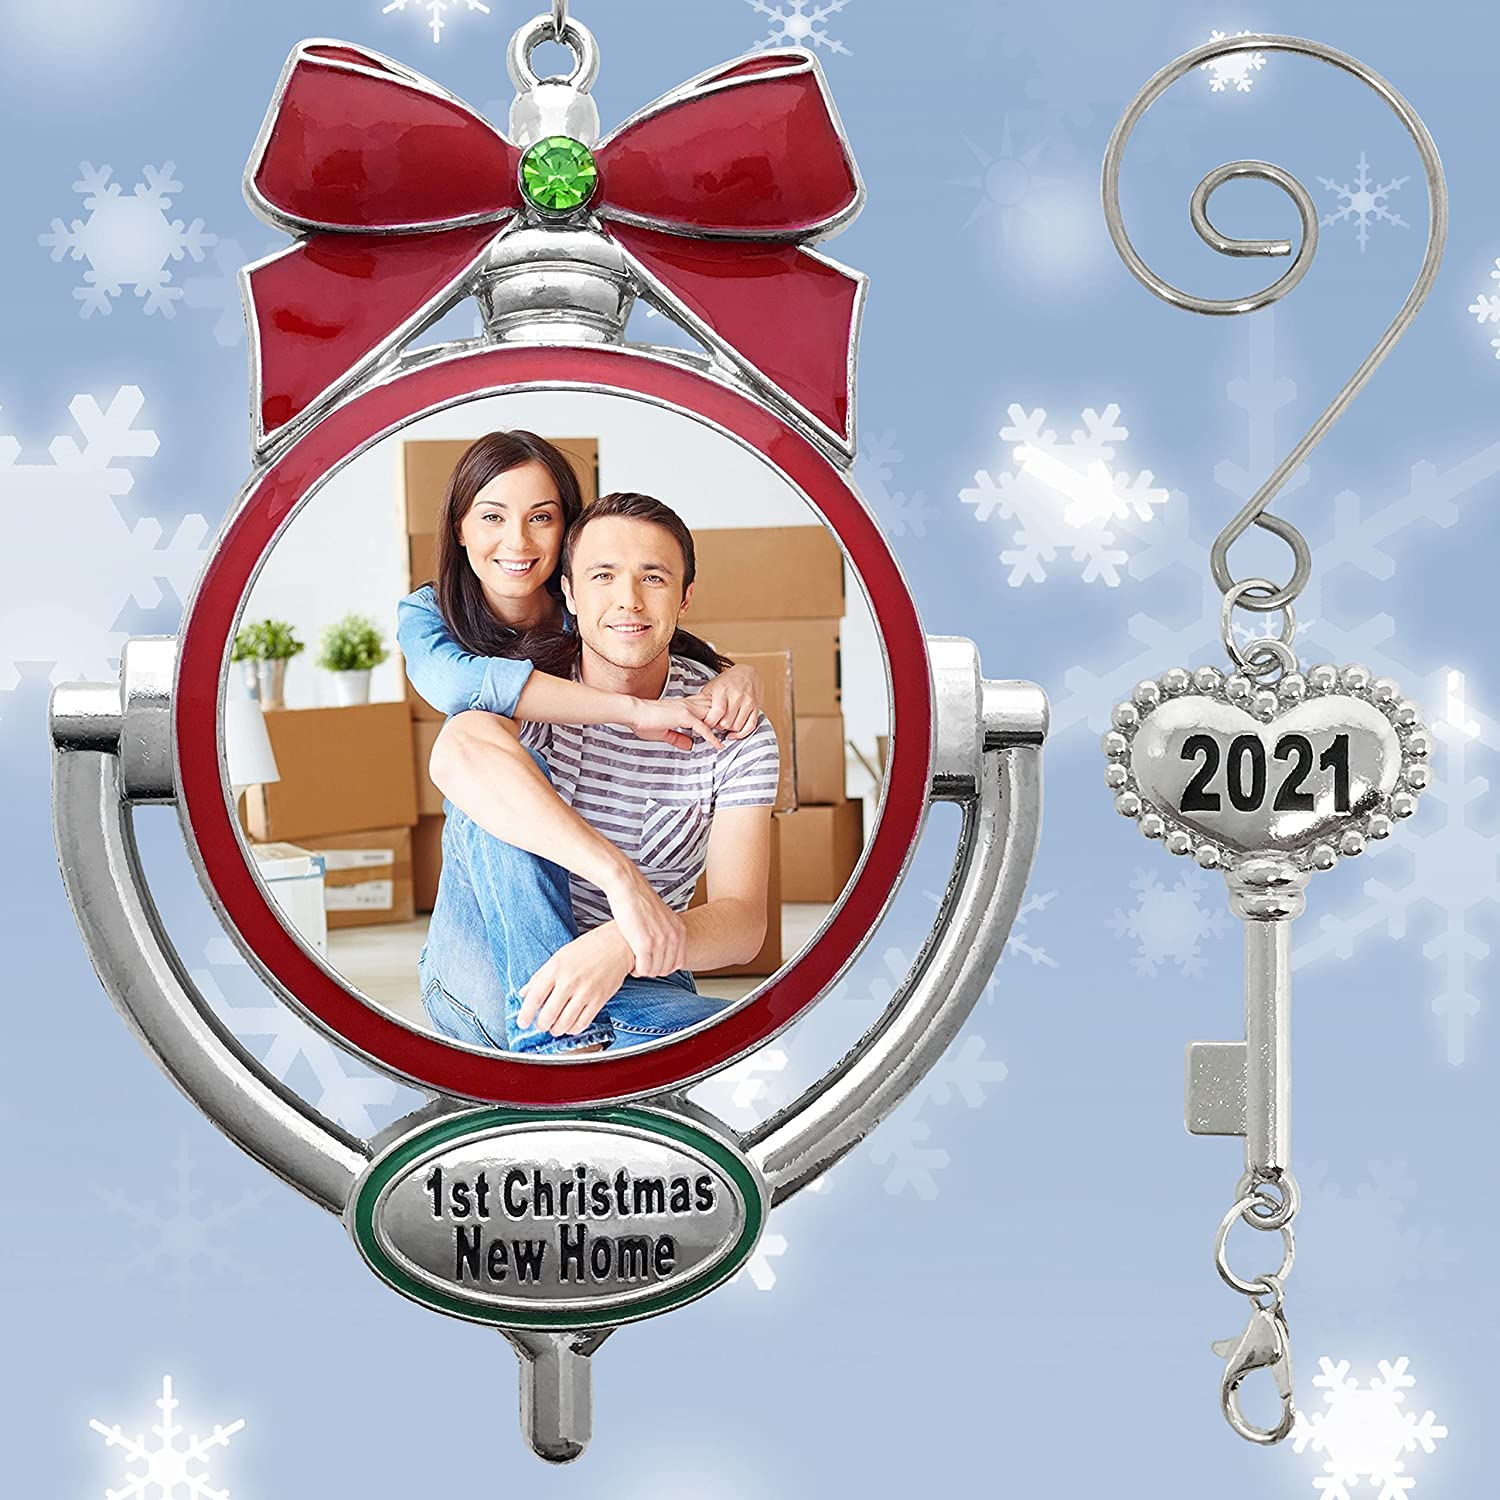 First Christmas in Our New Home Picture Ornament - 2021 Dated Key Charm with a Photo Opening - Decorative Door Knocker Style - Red Bow Silver Metal with Decorative S-Hook